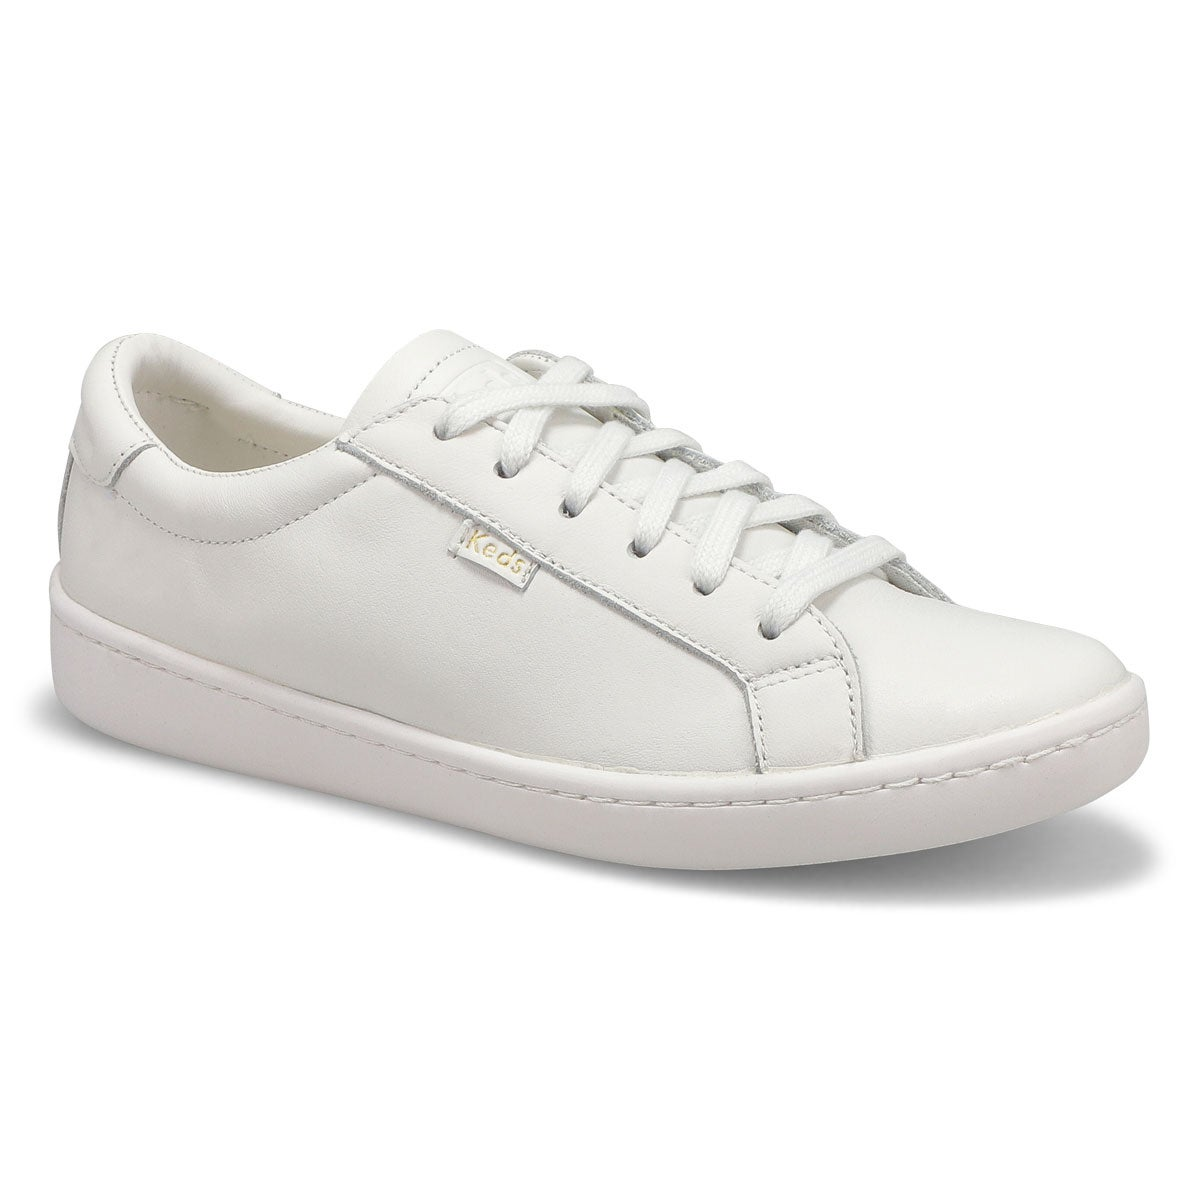 Lds Ace white/white lthr lace up sneaker